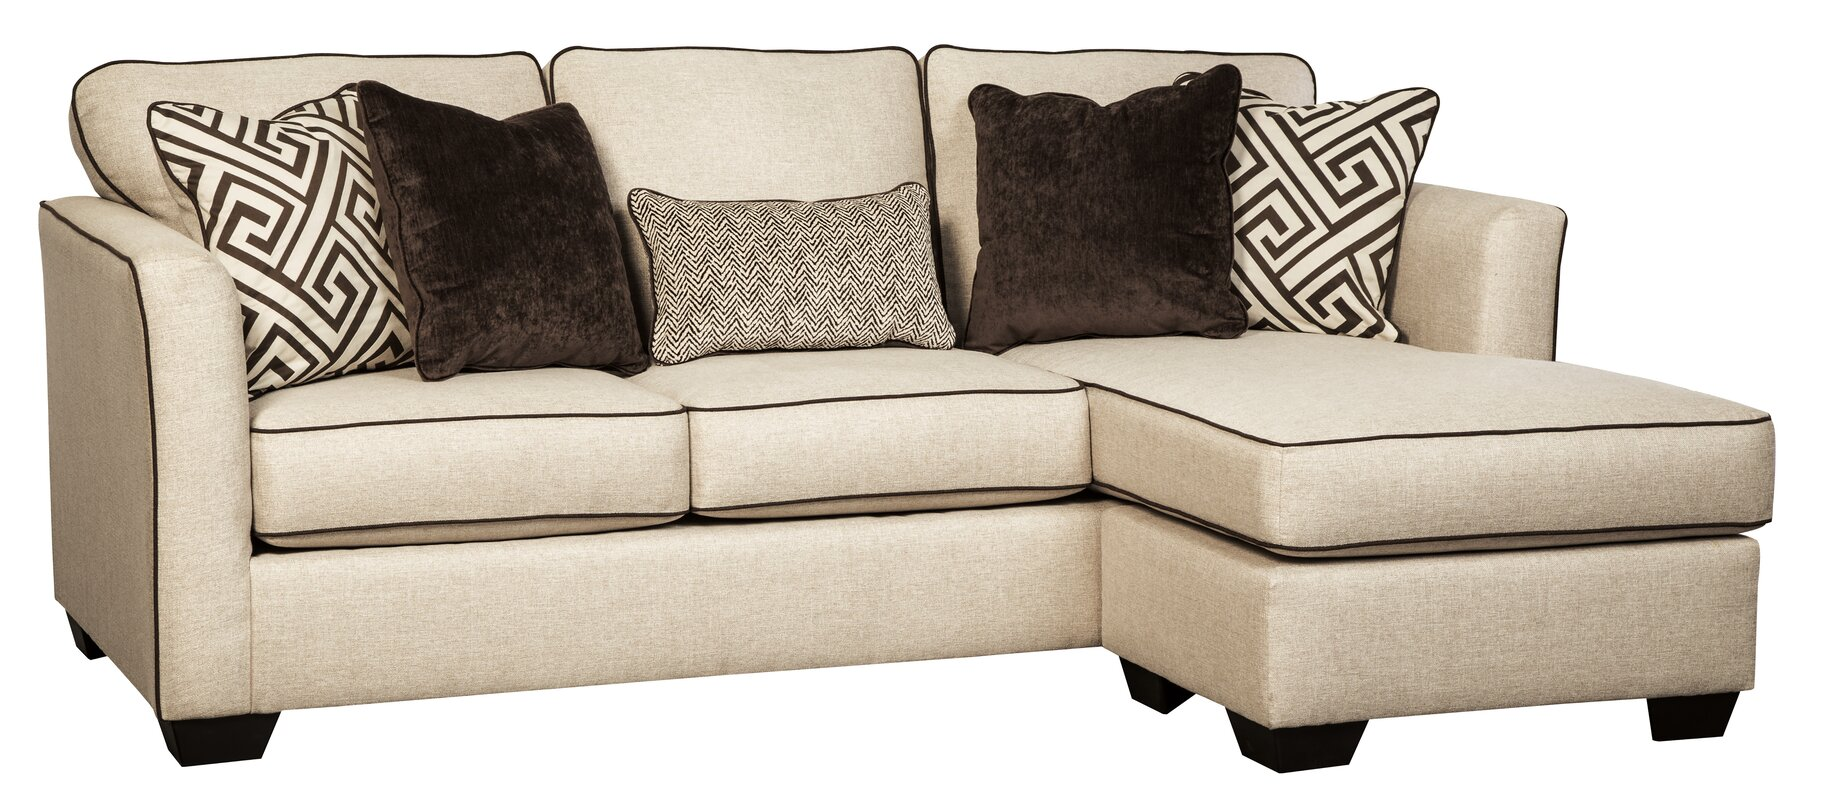 Carlinworth Sofa Chaise Sleeper